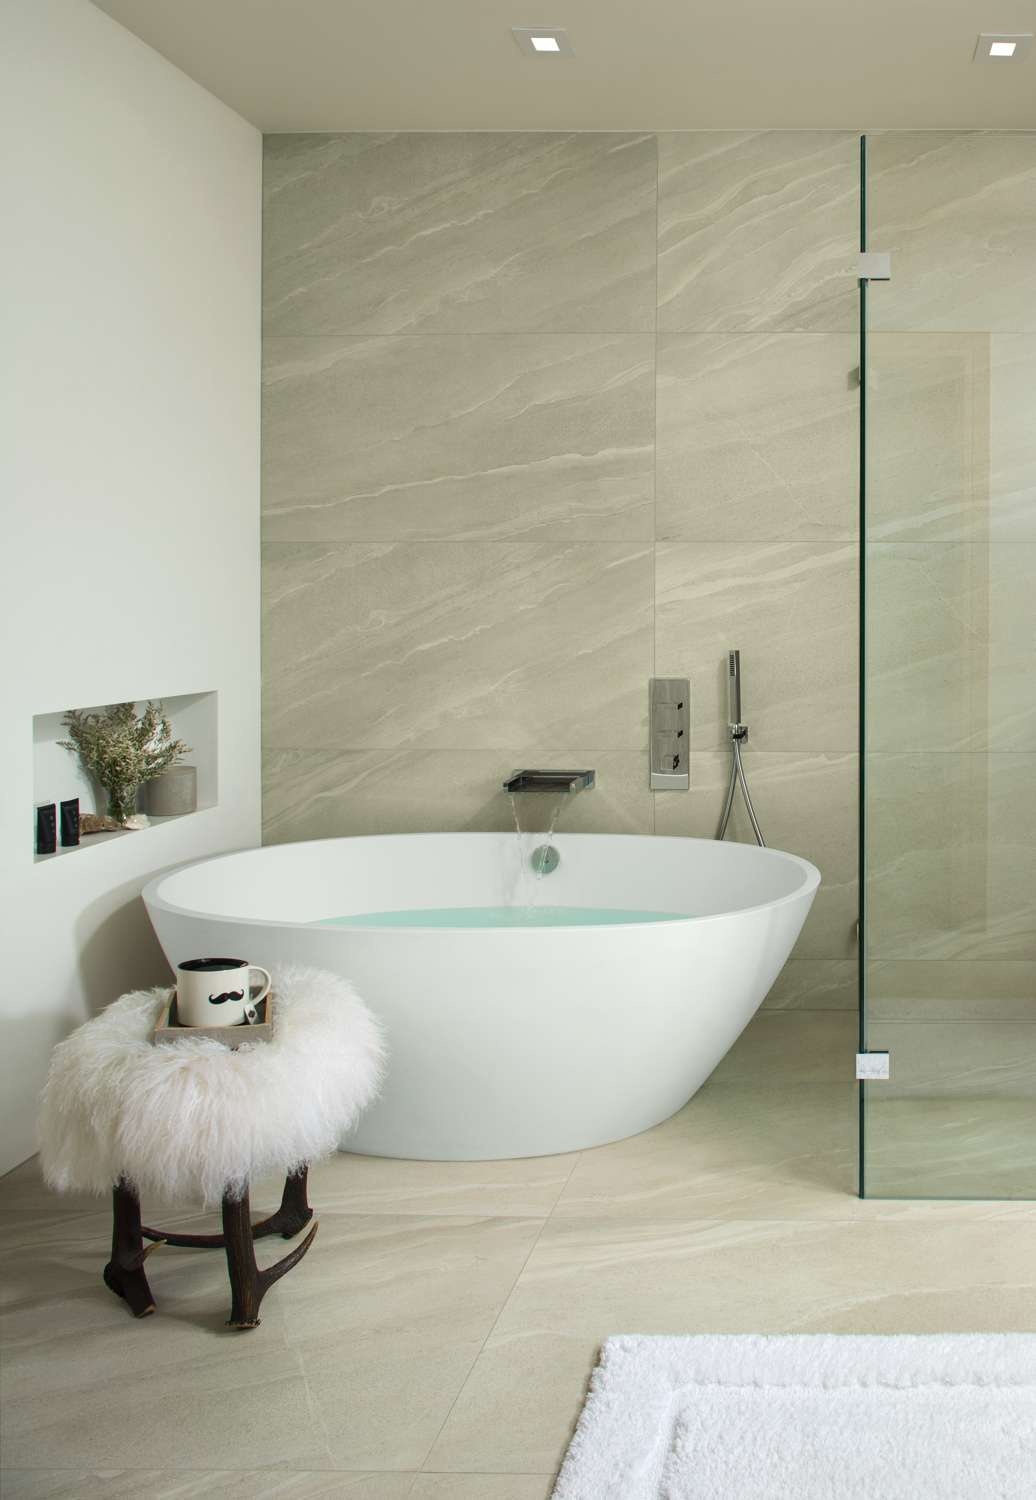 Oval bathtub for a spa bathroom